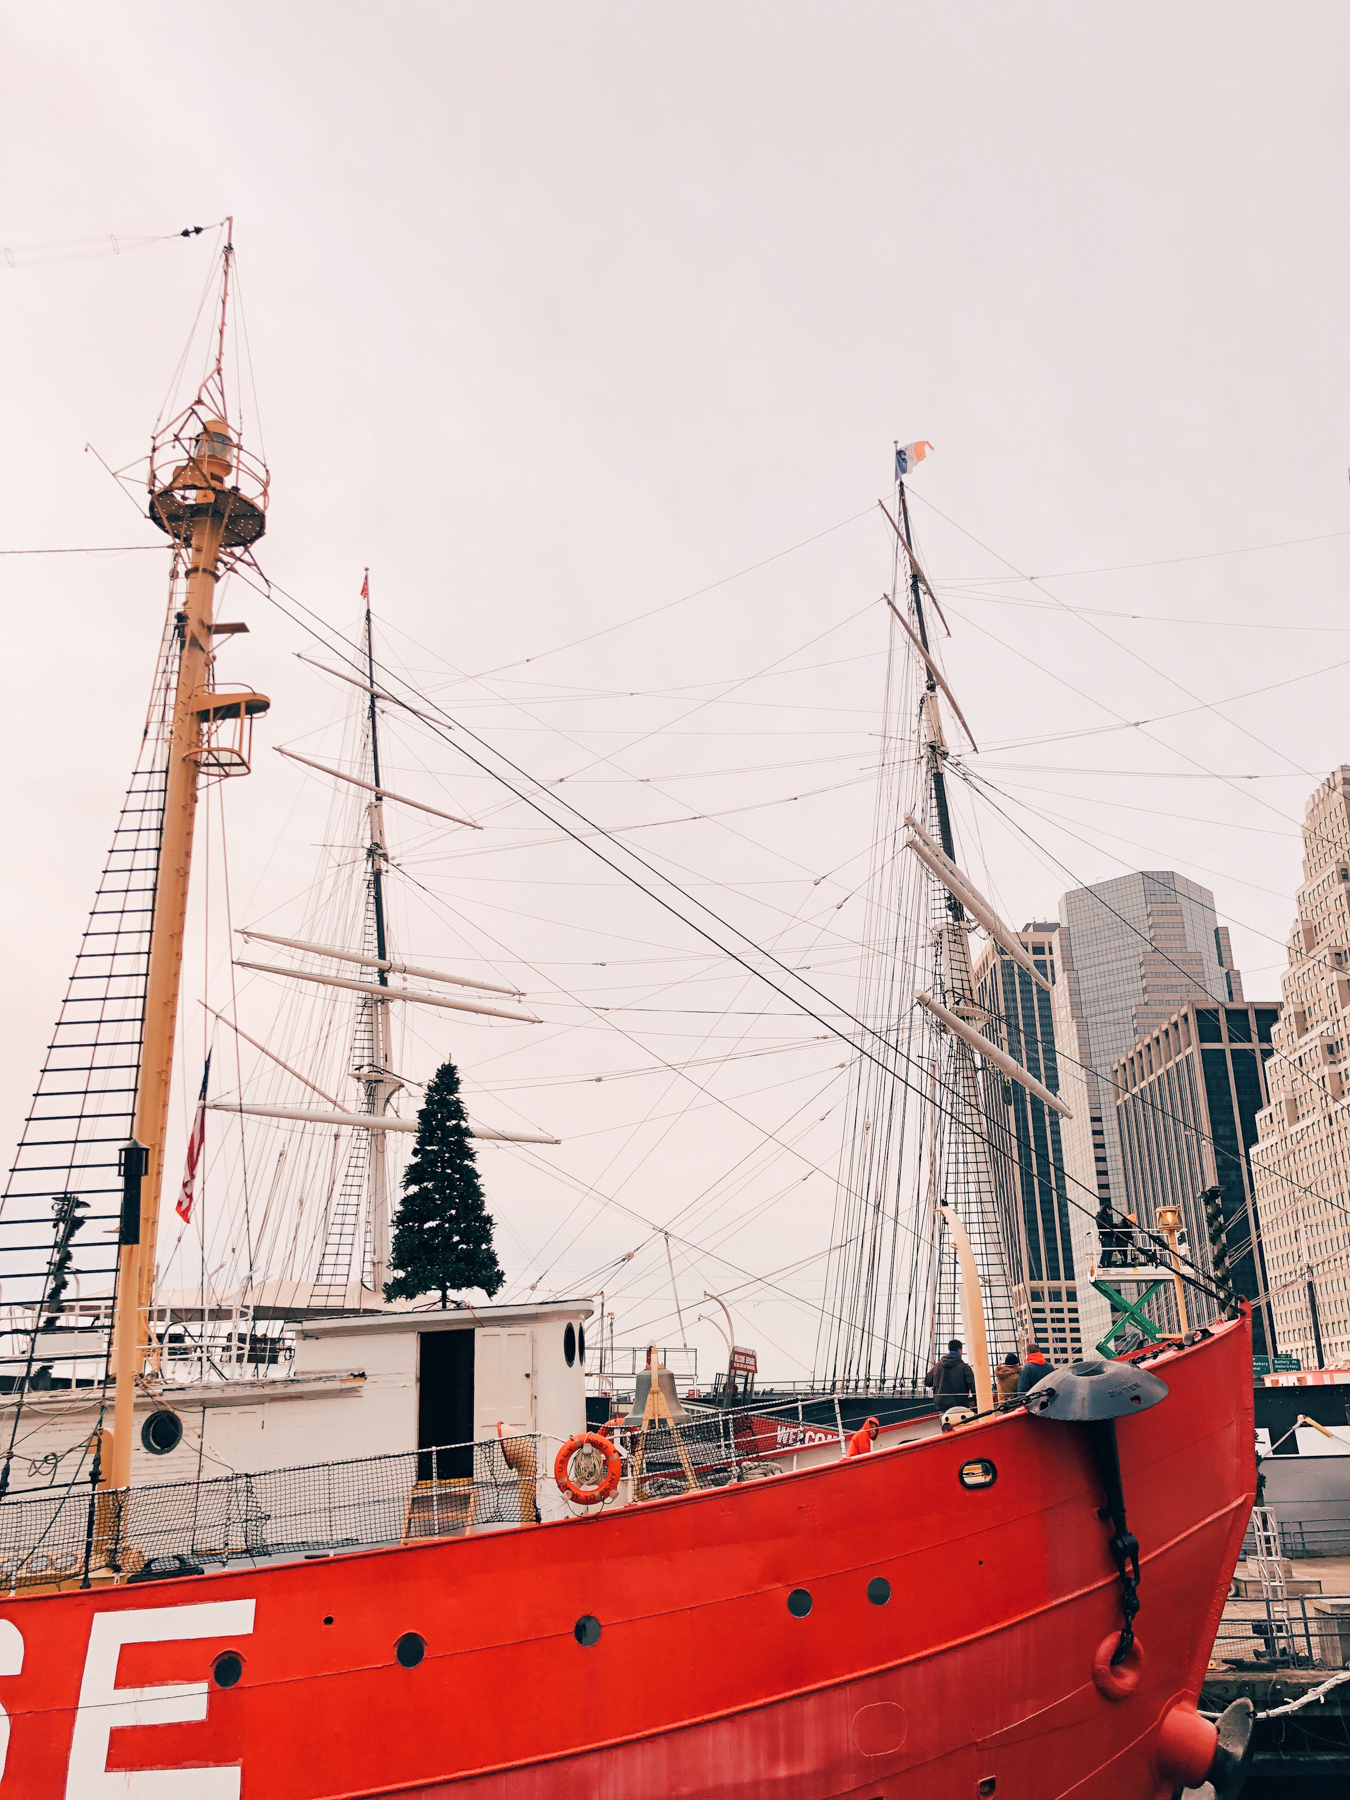 Boats decorated for Christmas at South Street Seaport